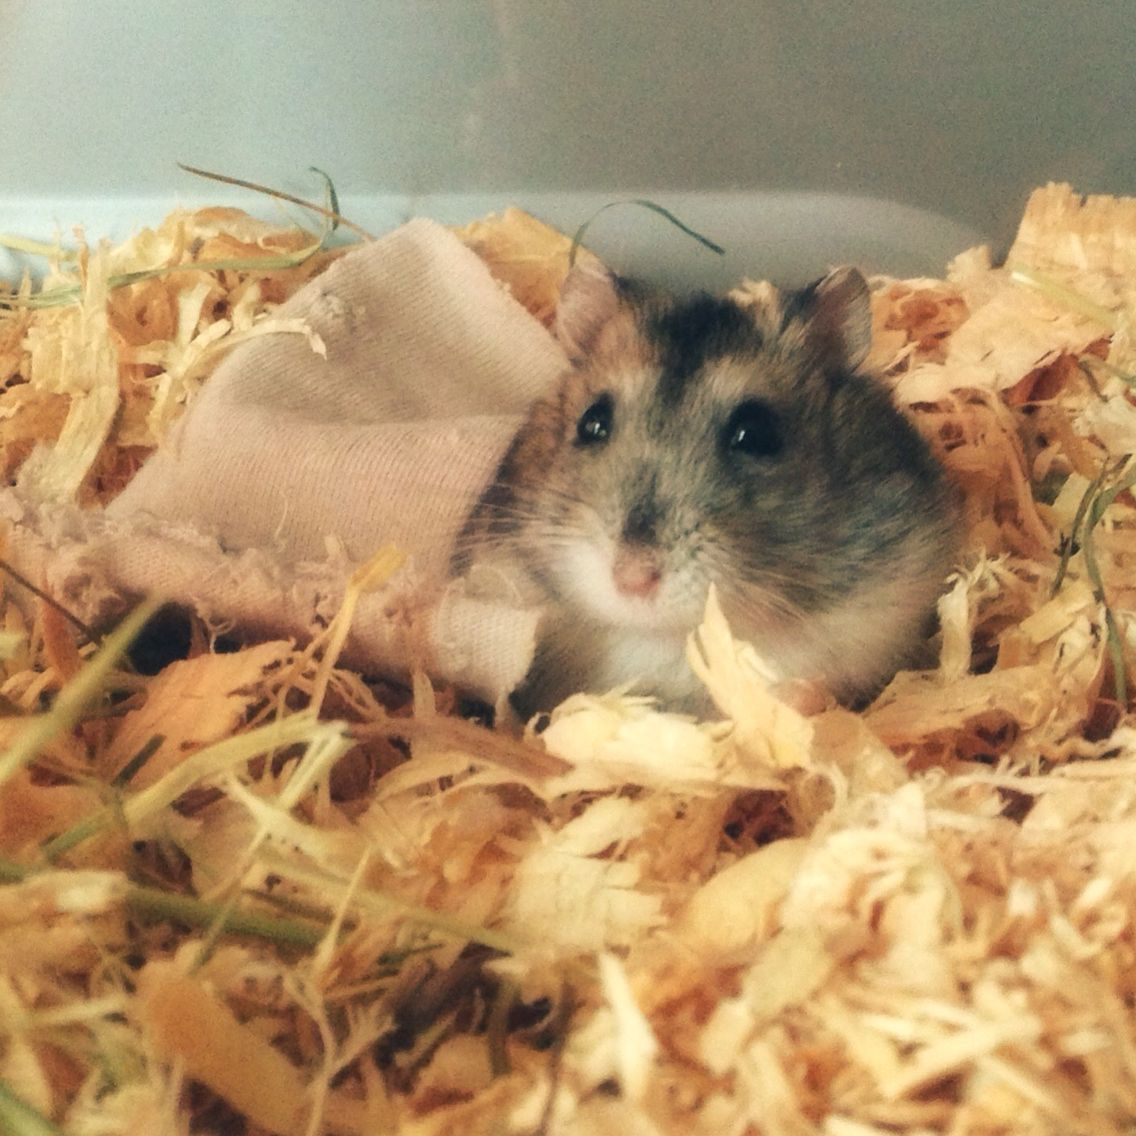 hamster eating inside of his food bowl - 20 cute pictures of